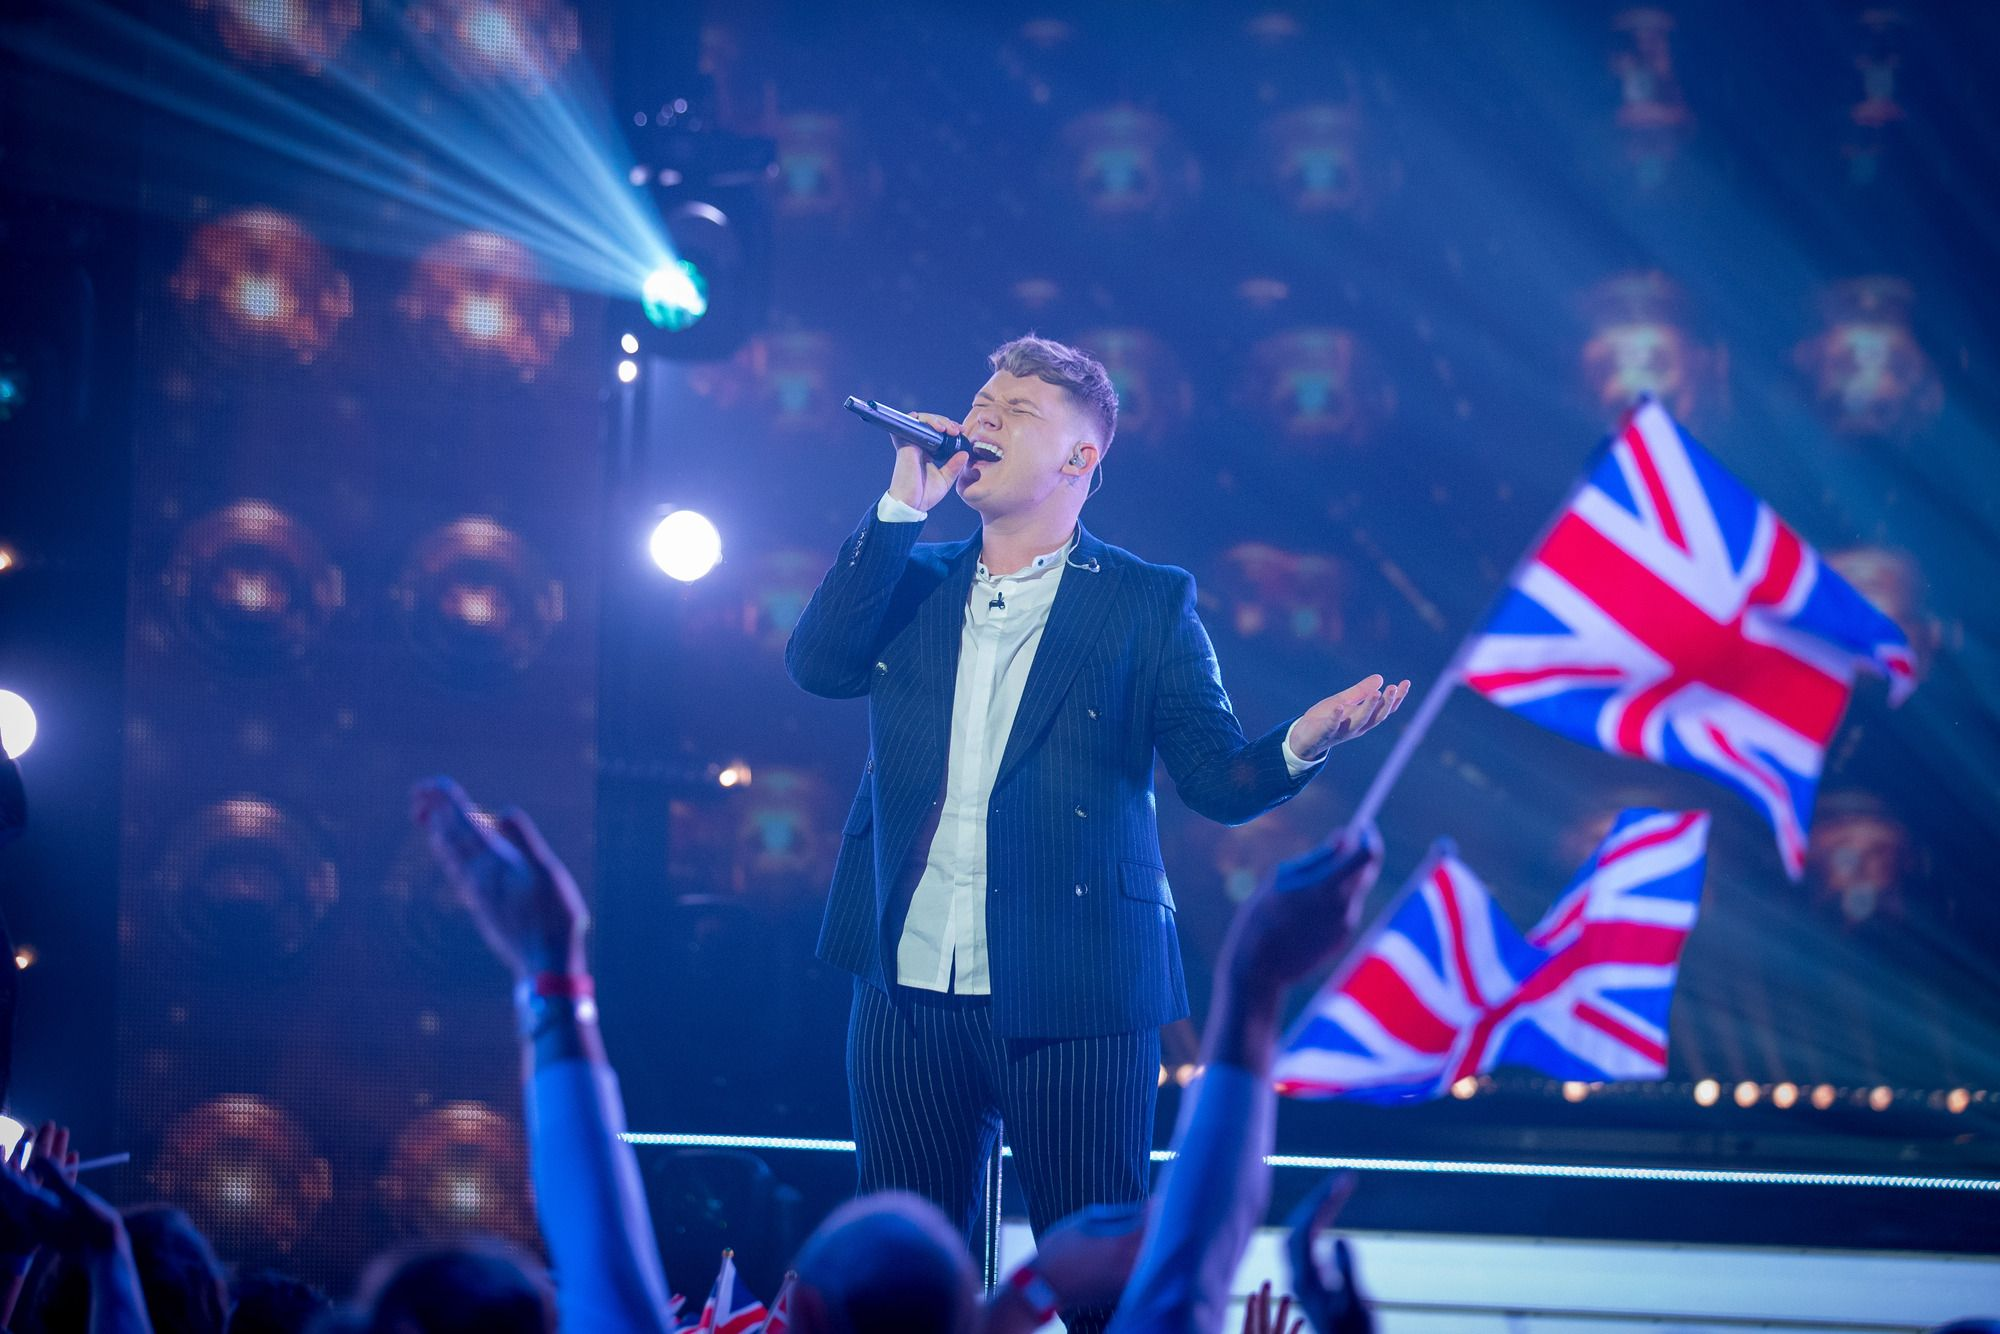 Eurovision UK hopeful Michael Rice opens up about his chances at the Grand Final